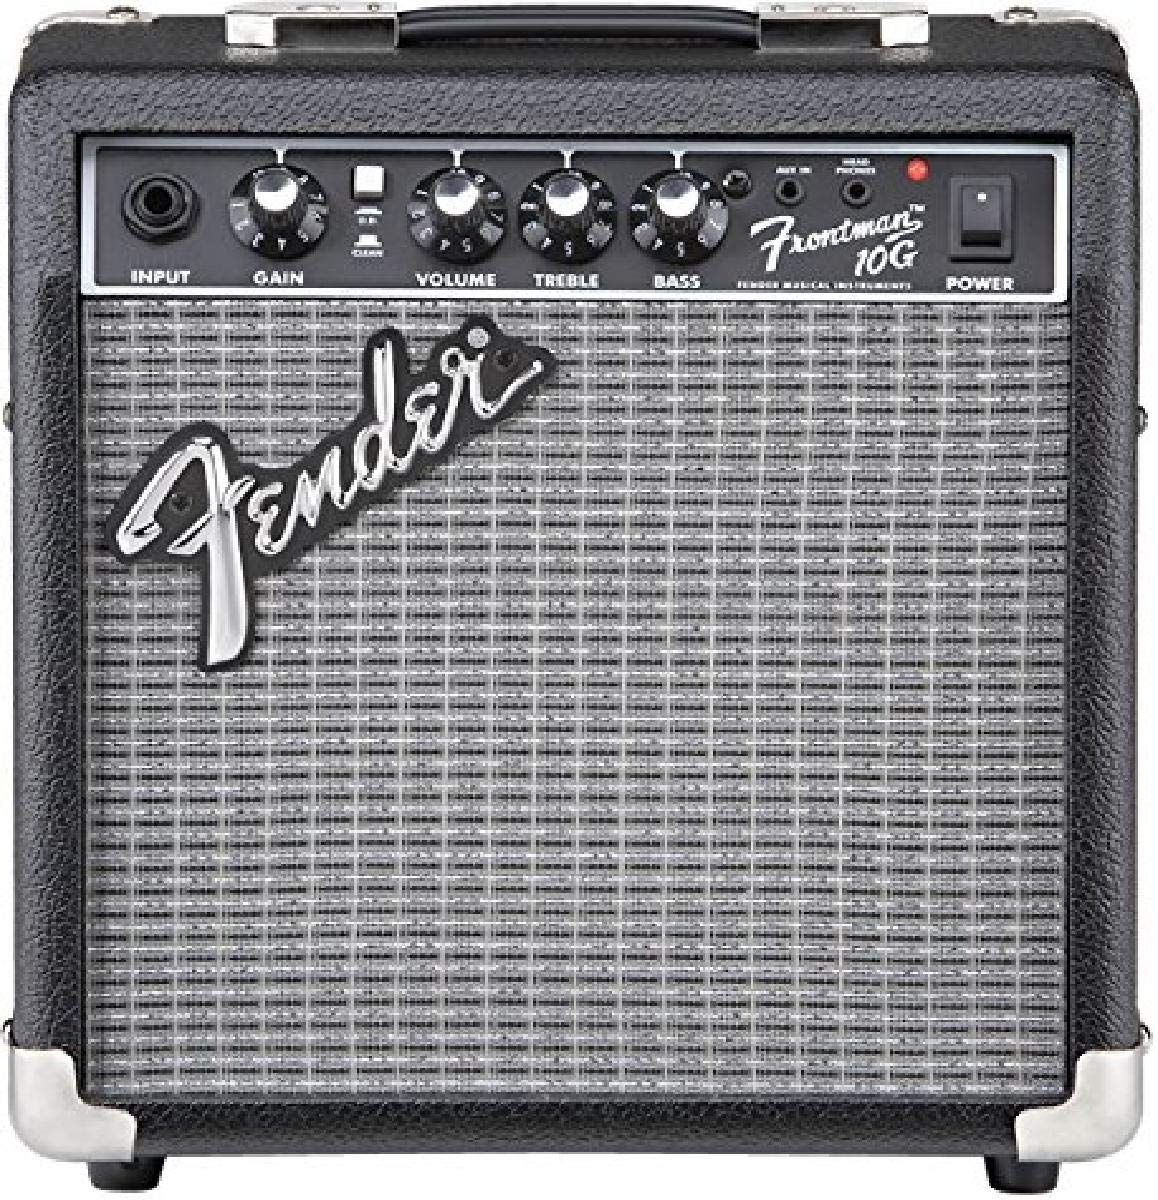 Amazon.com: Fender Frontman 10G Electric Guitar Amplifier: Musical Instruments